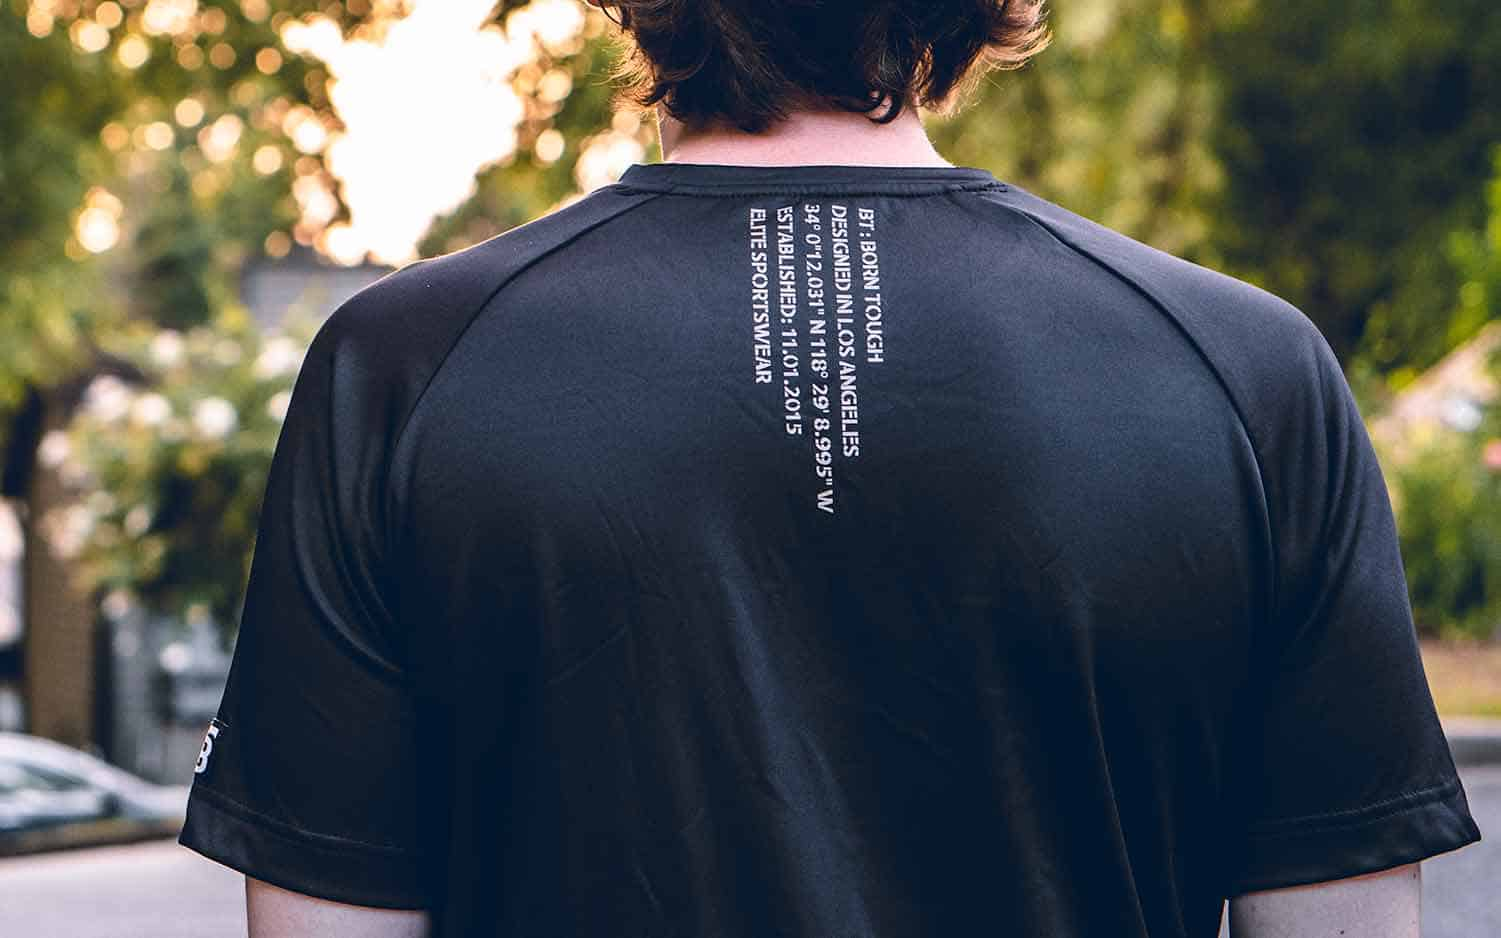 Born Tough Men's Air Pro Fitted Tee Review